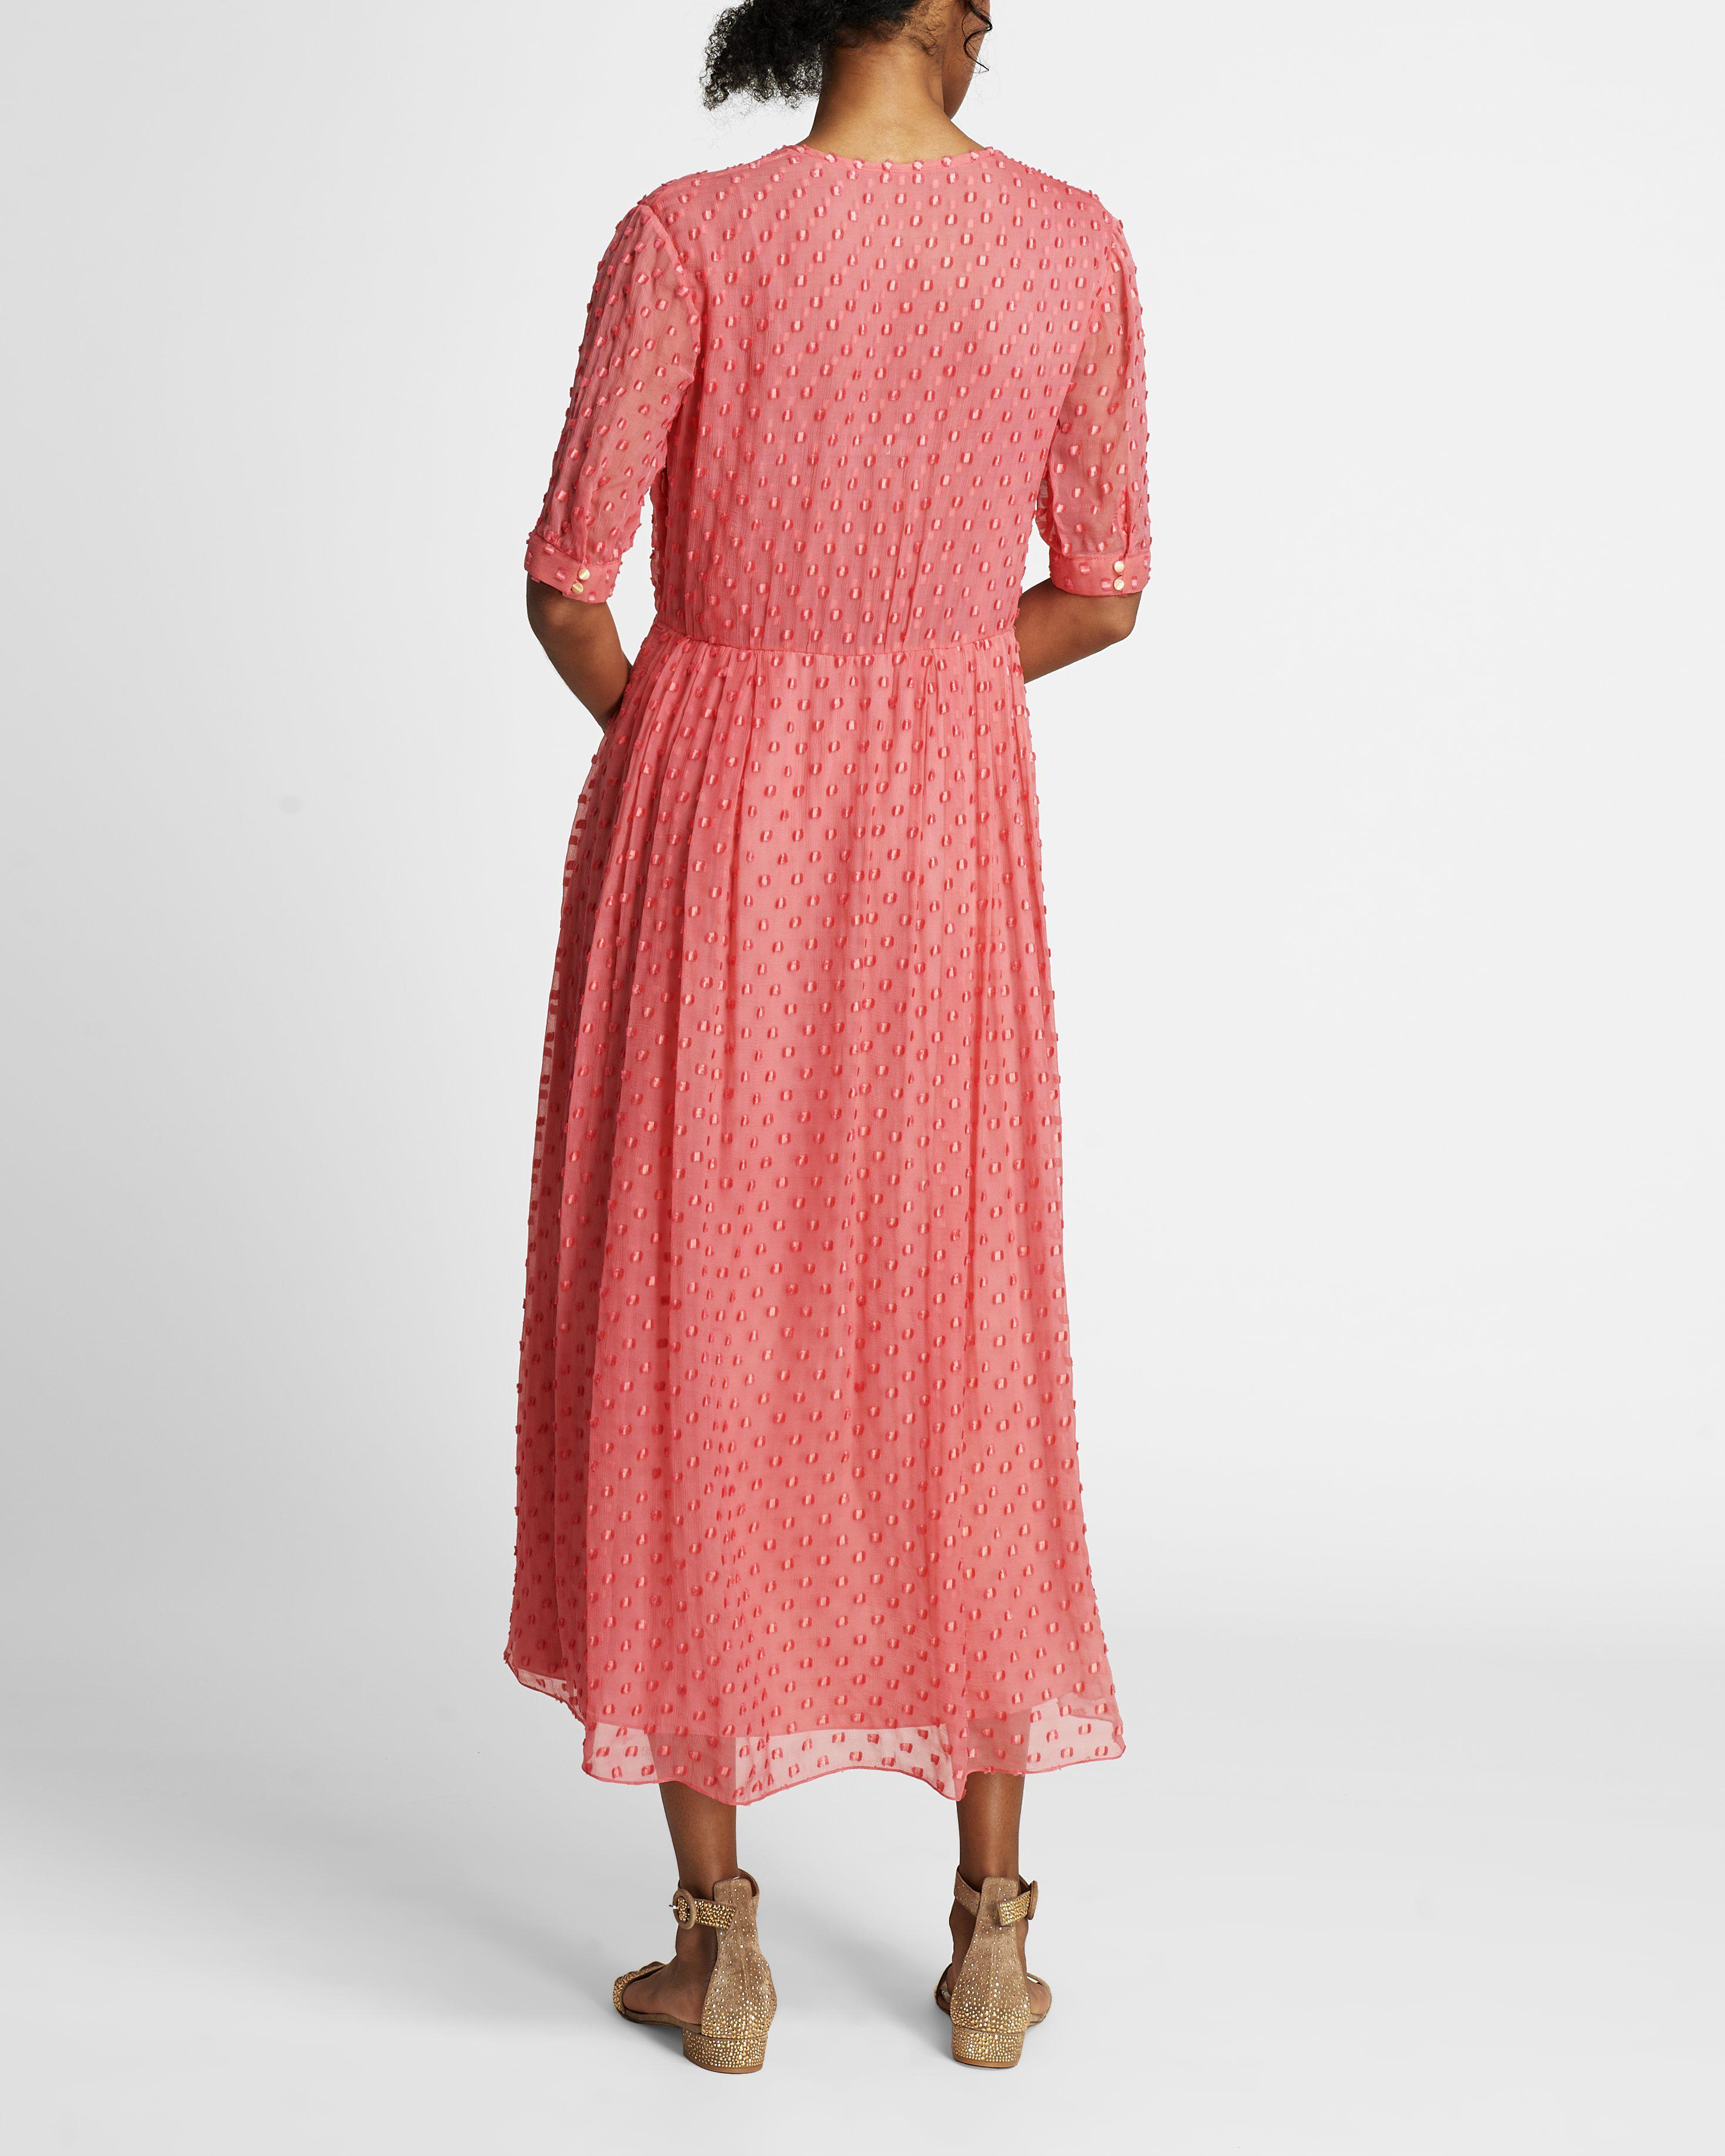 The Ivy Dress   Coral 4